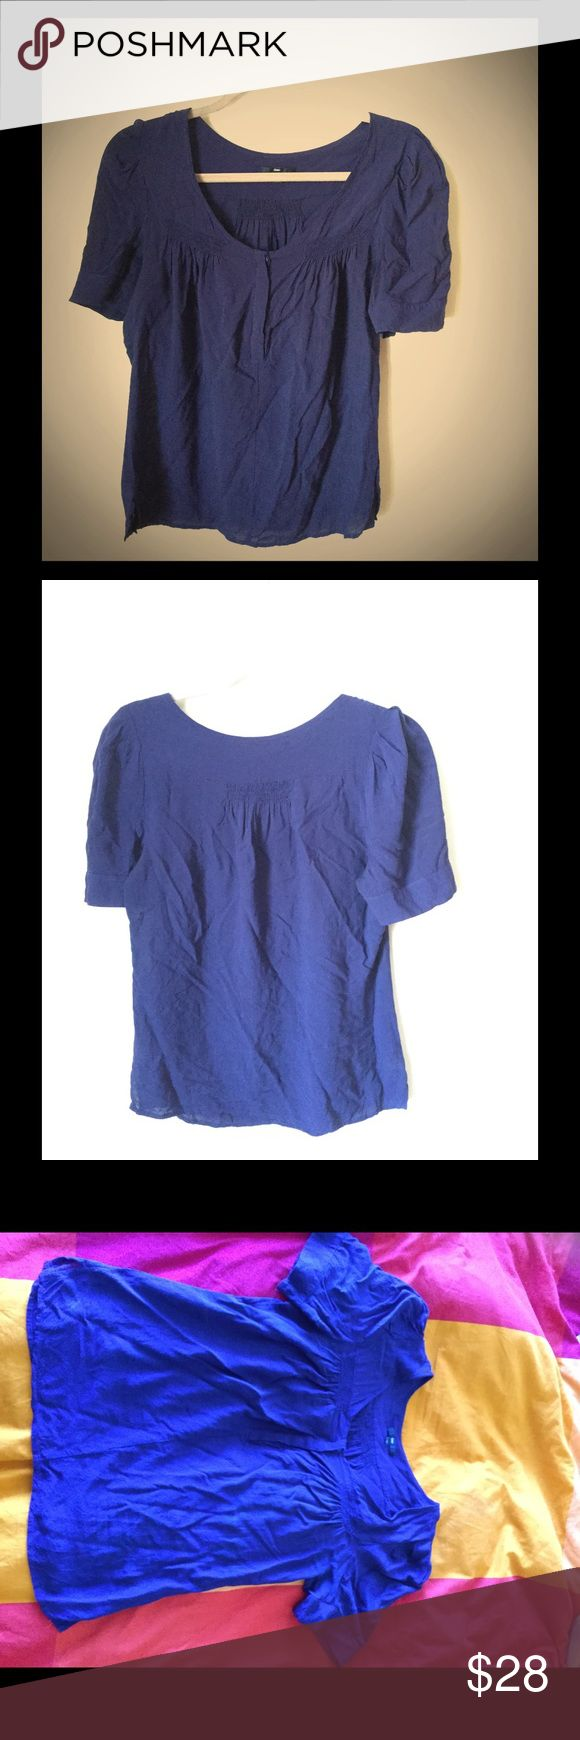 Gap- dark blue shirt with short sleeves. Great Gap dark blue shirt with short sleeves. Size M. 100% Rayon. Has buttons going down the shirt mid level. GAP Tops Blouses